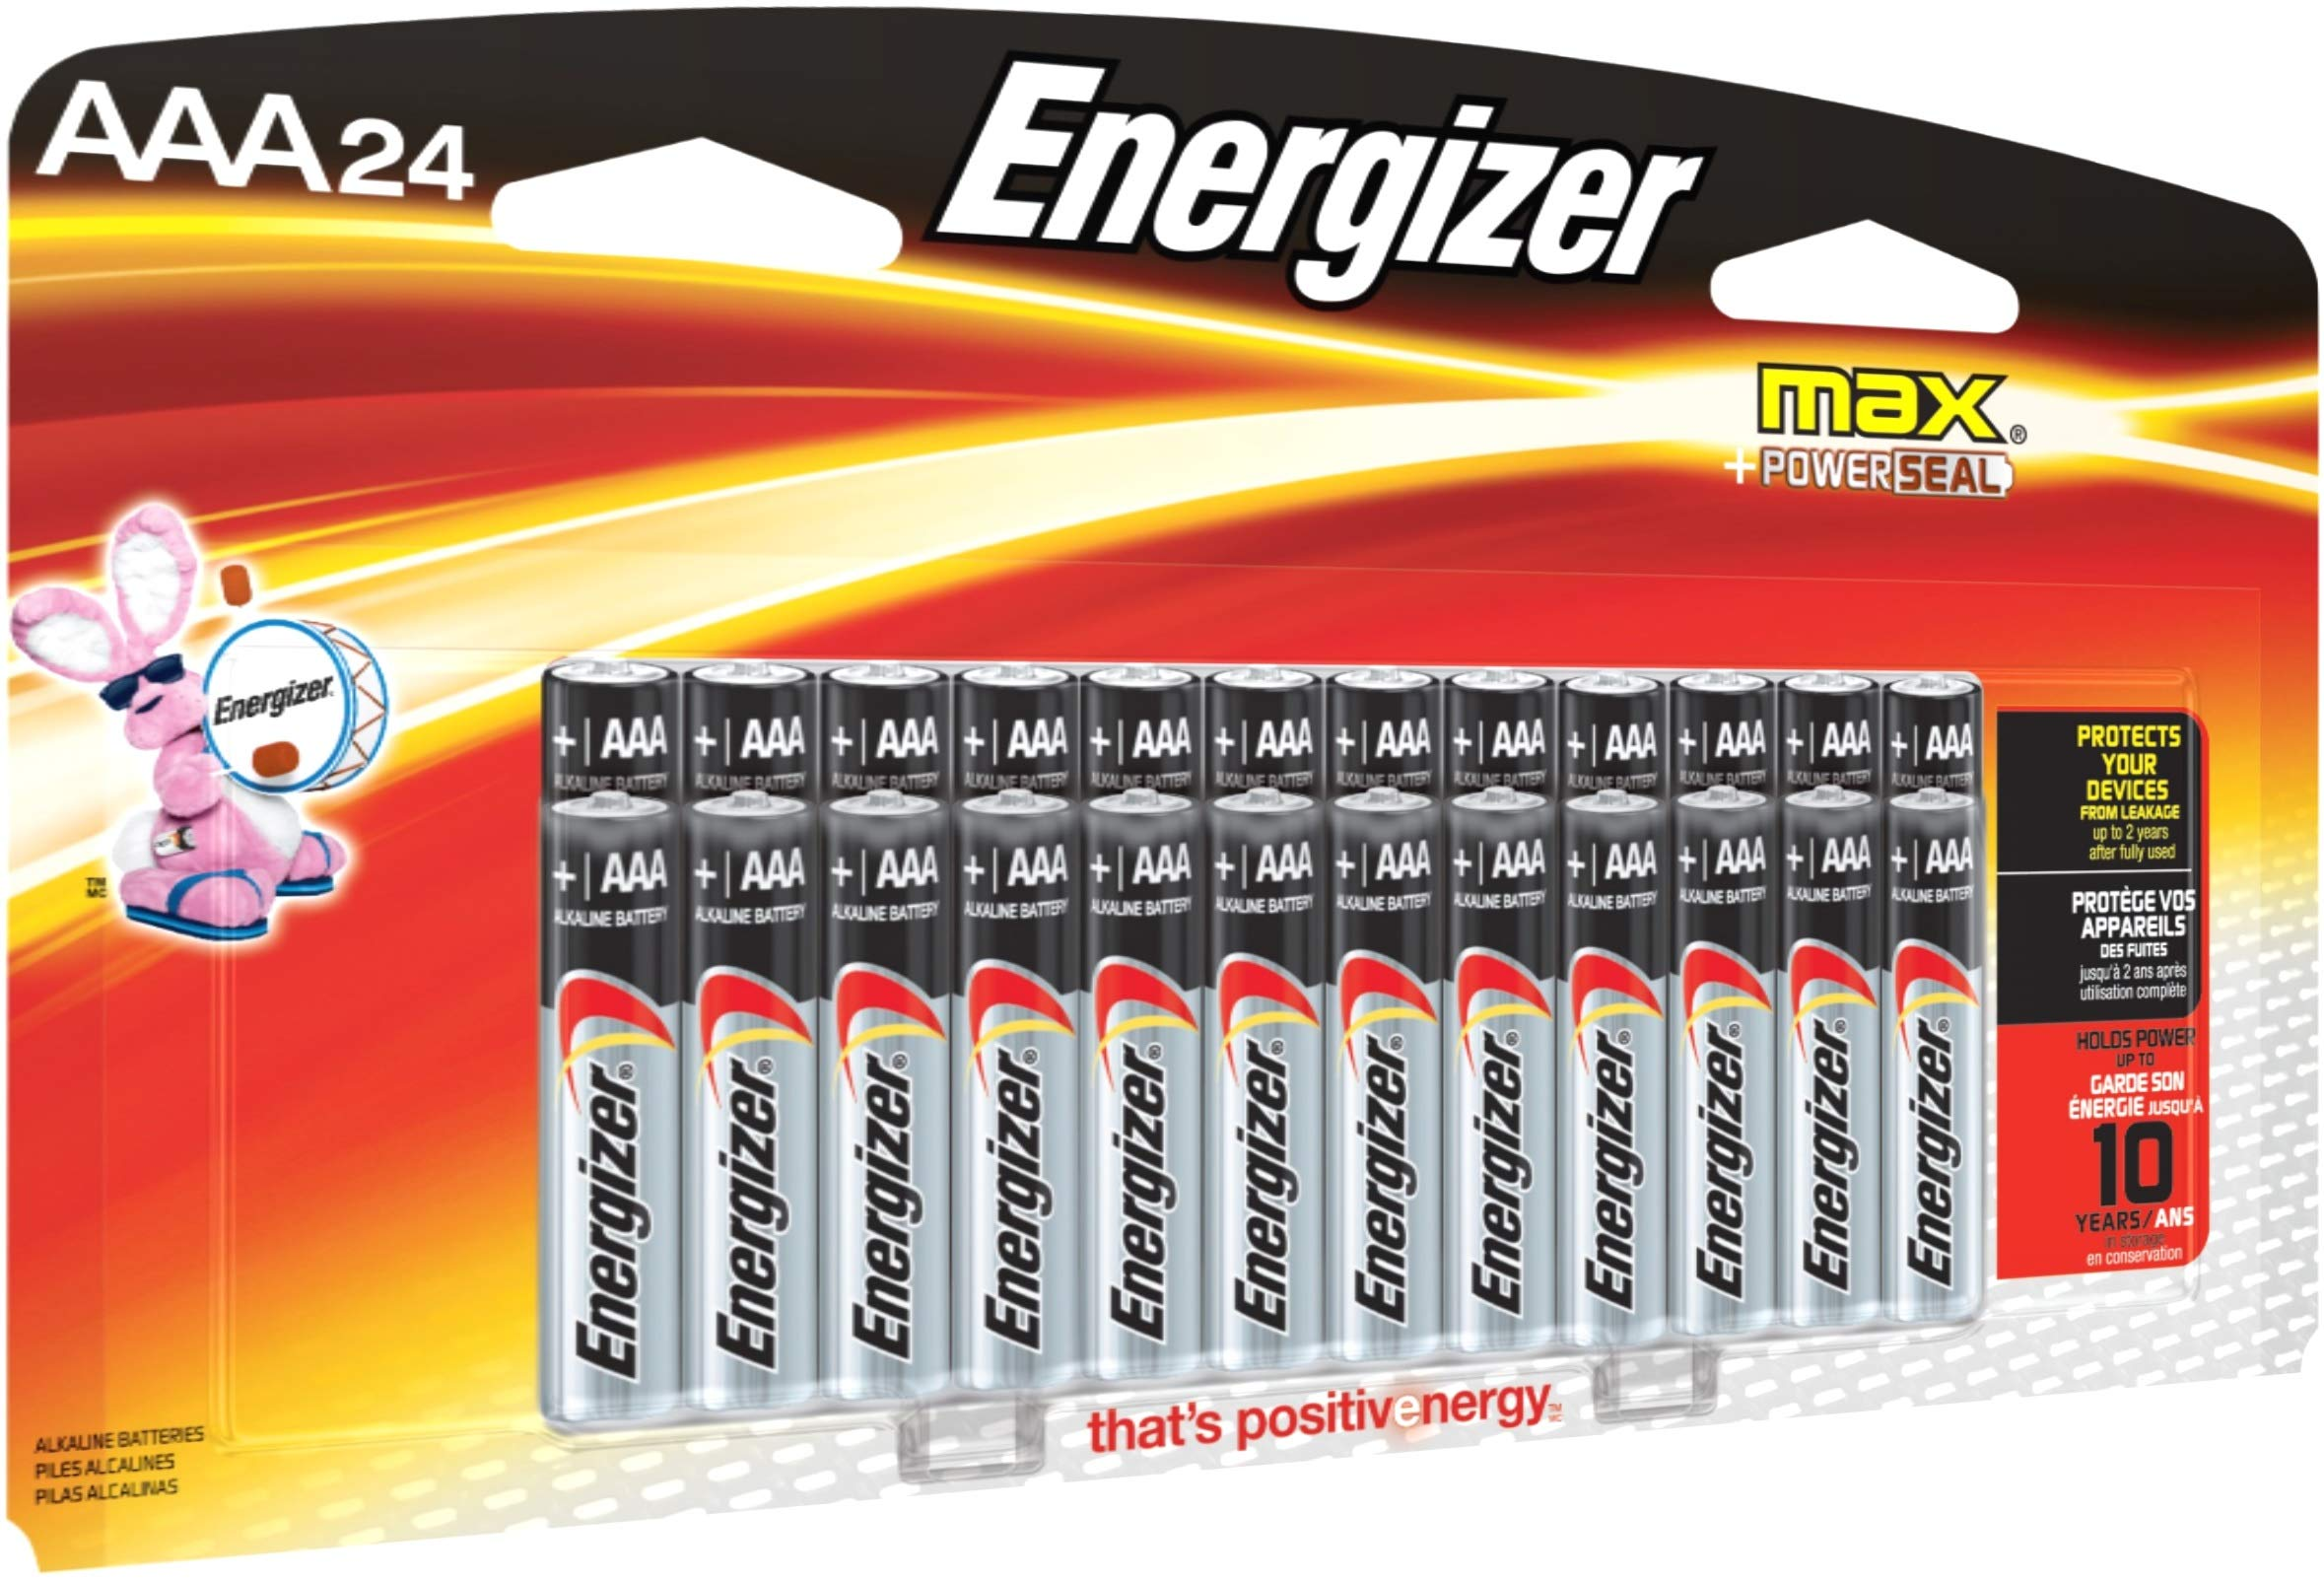 Energizer AAA Batteries (24 Count), Triple A Max Alkaline Battery – Packaging May